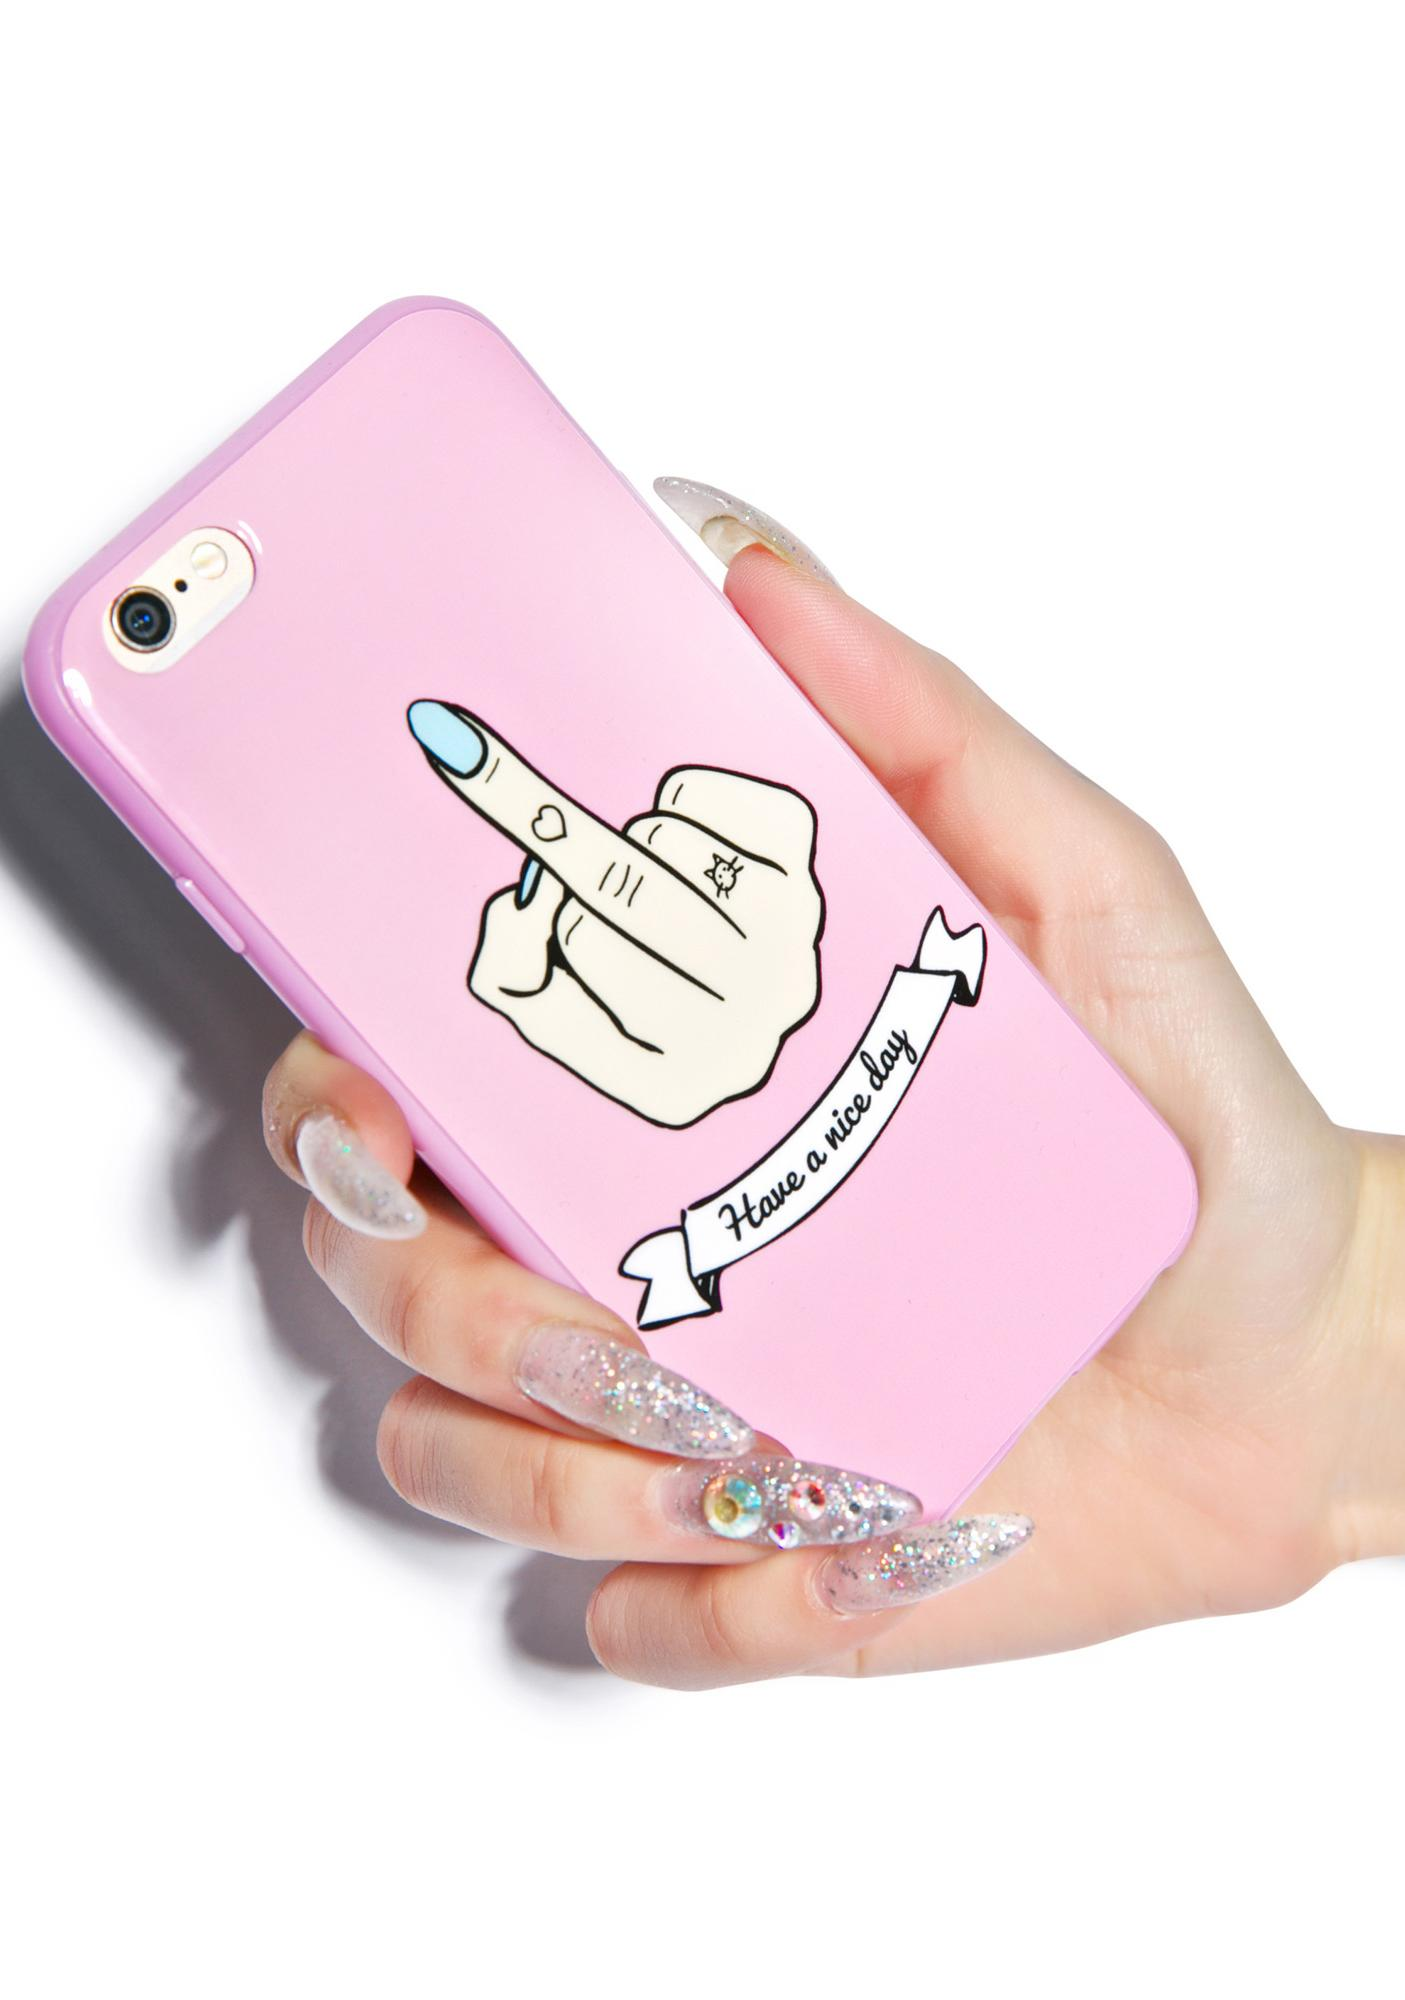 Local Heroes Middle Finger iPhone 5 Case